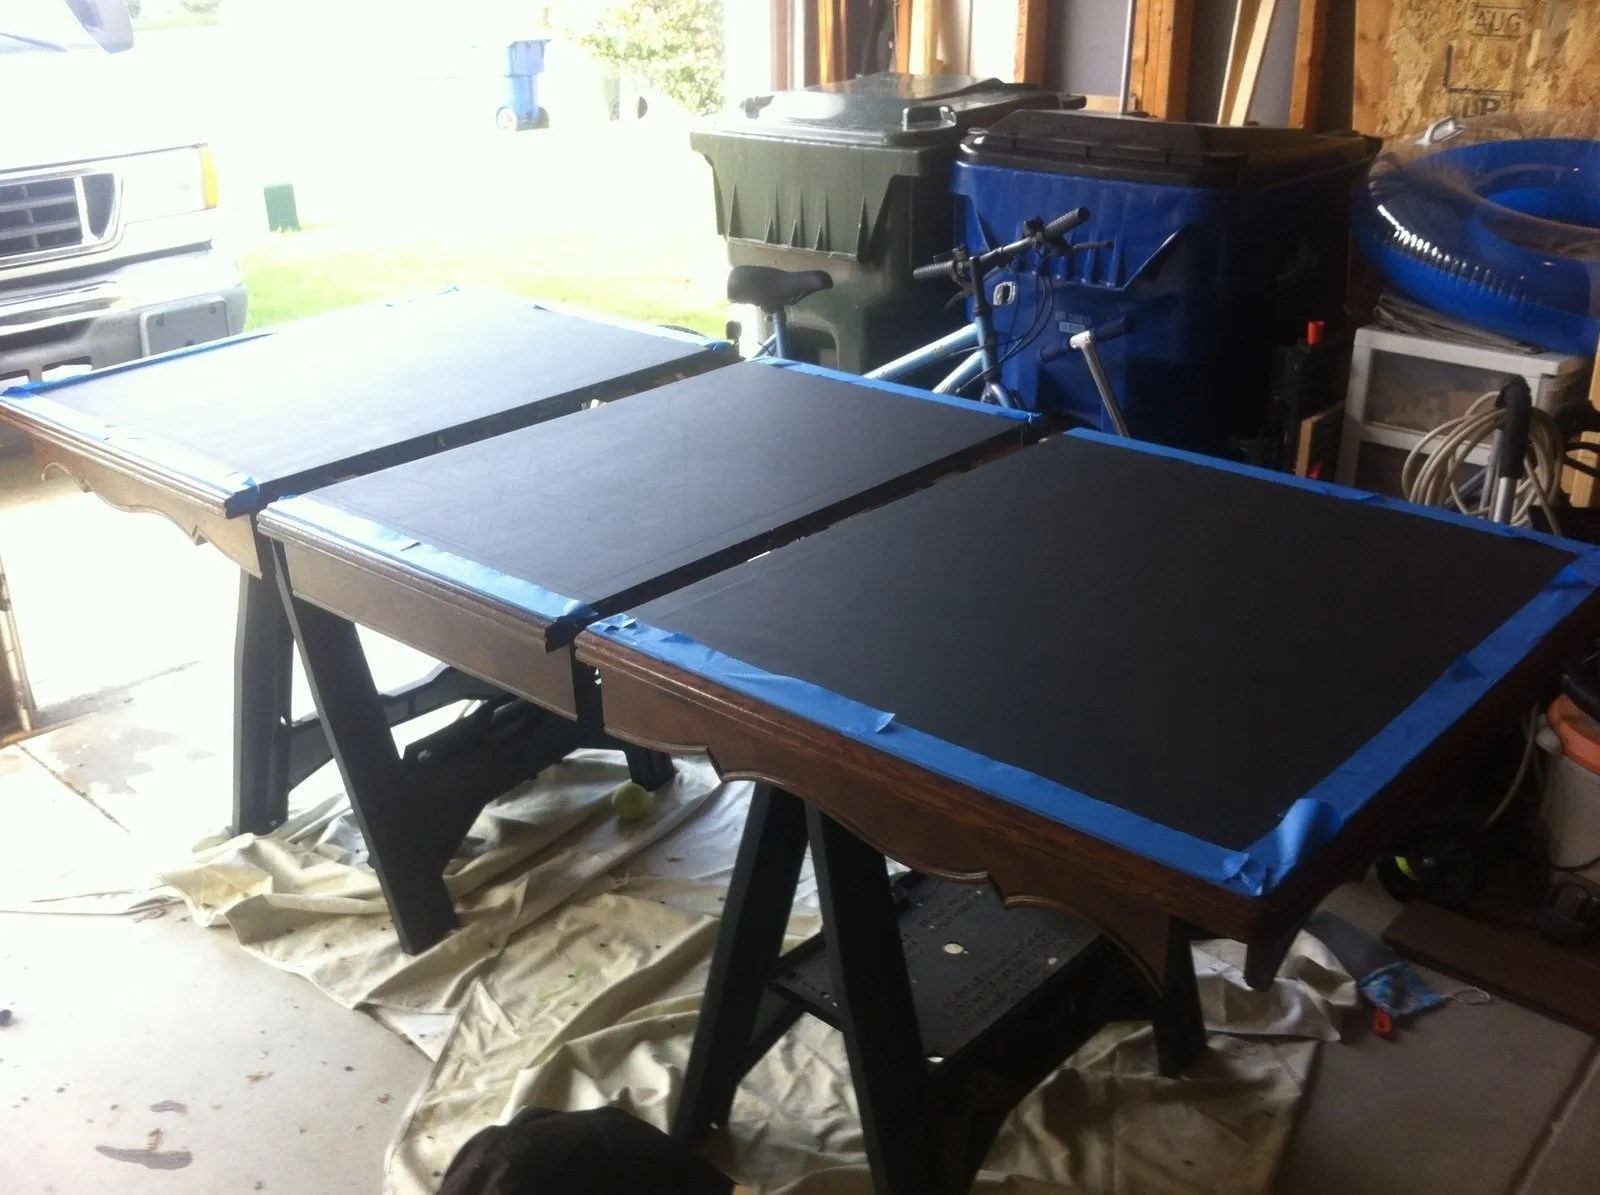 I Reattached The Table Legs And Moved Indoors For The Second Coat.